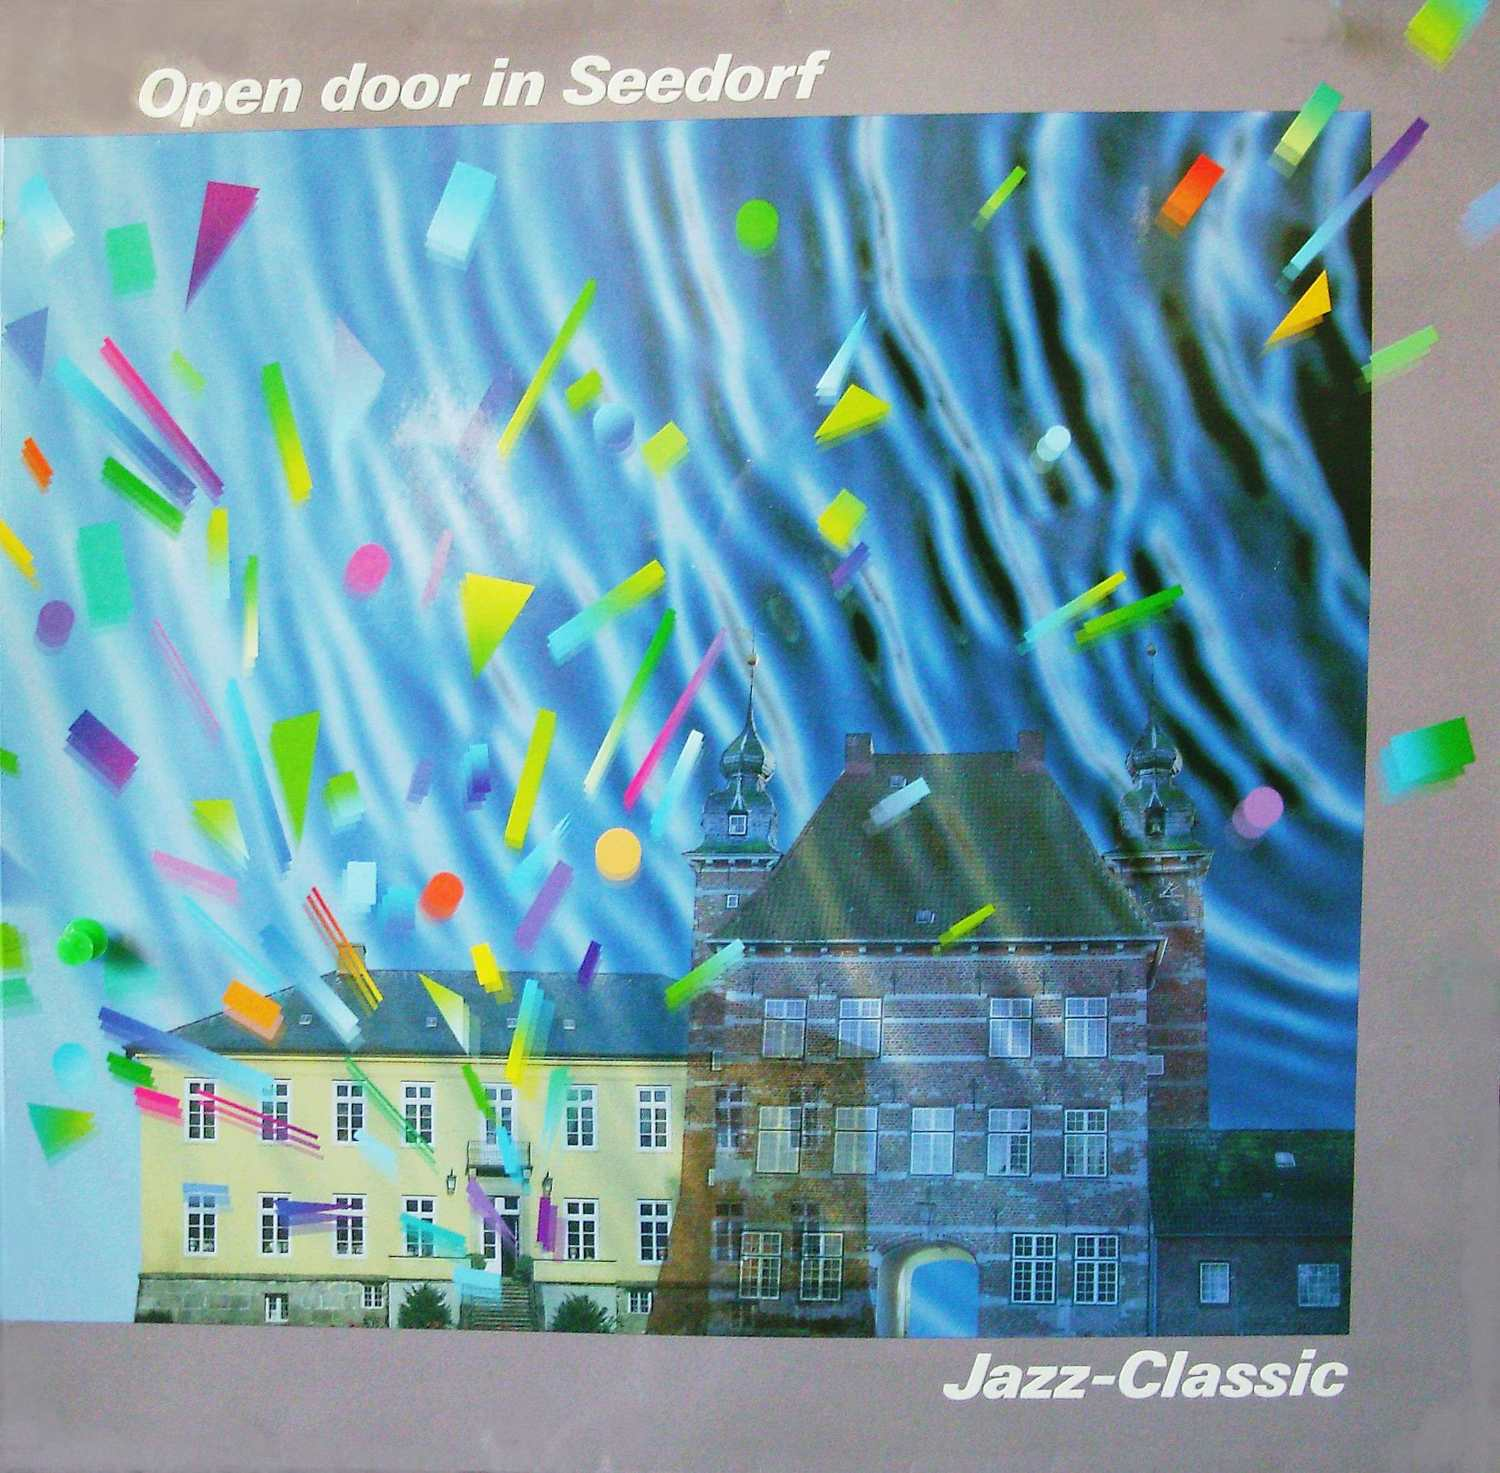 Open door Seedorf Titel